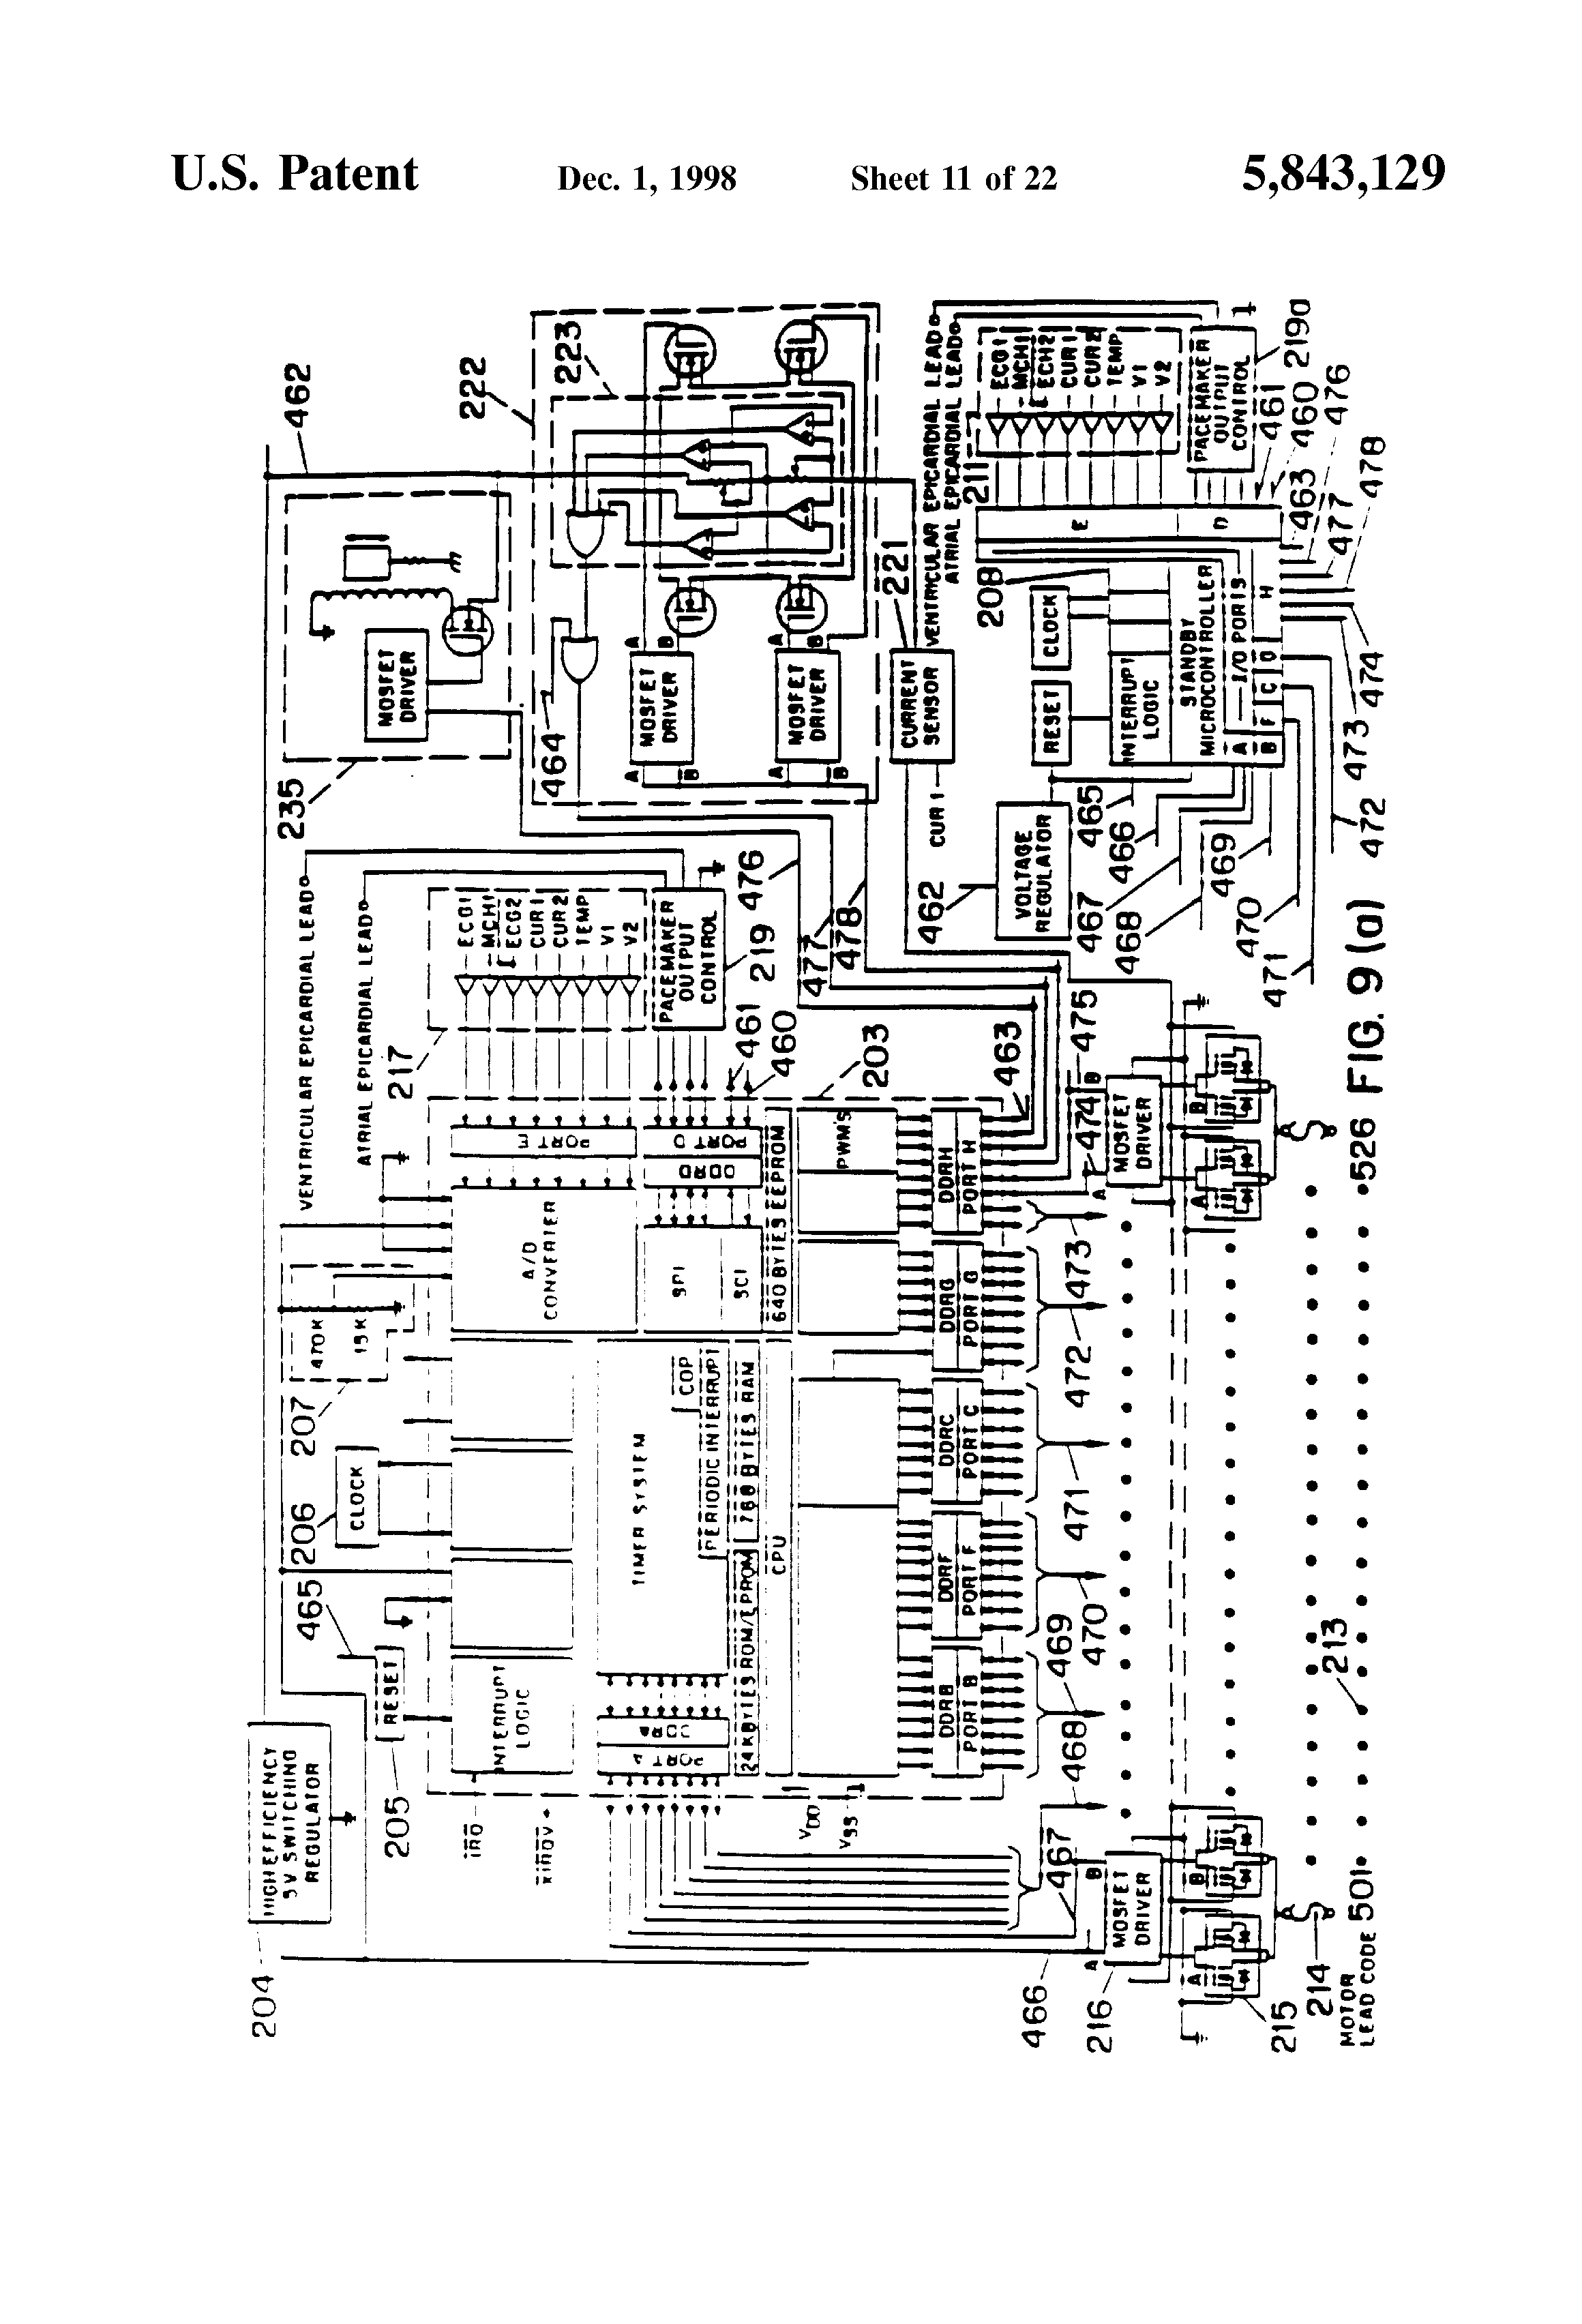 Magnificent Code Alarm Wiring Diagram Image - The Wire - magnox.info